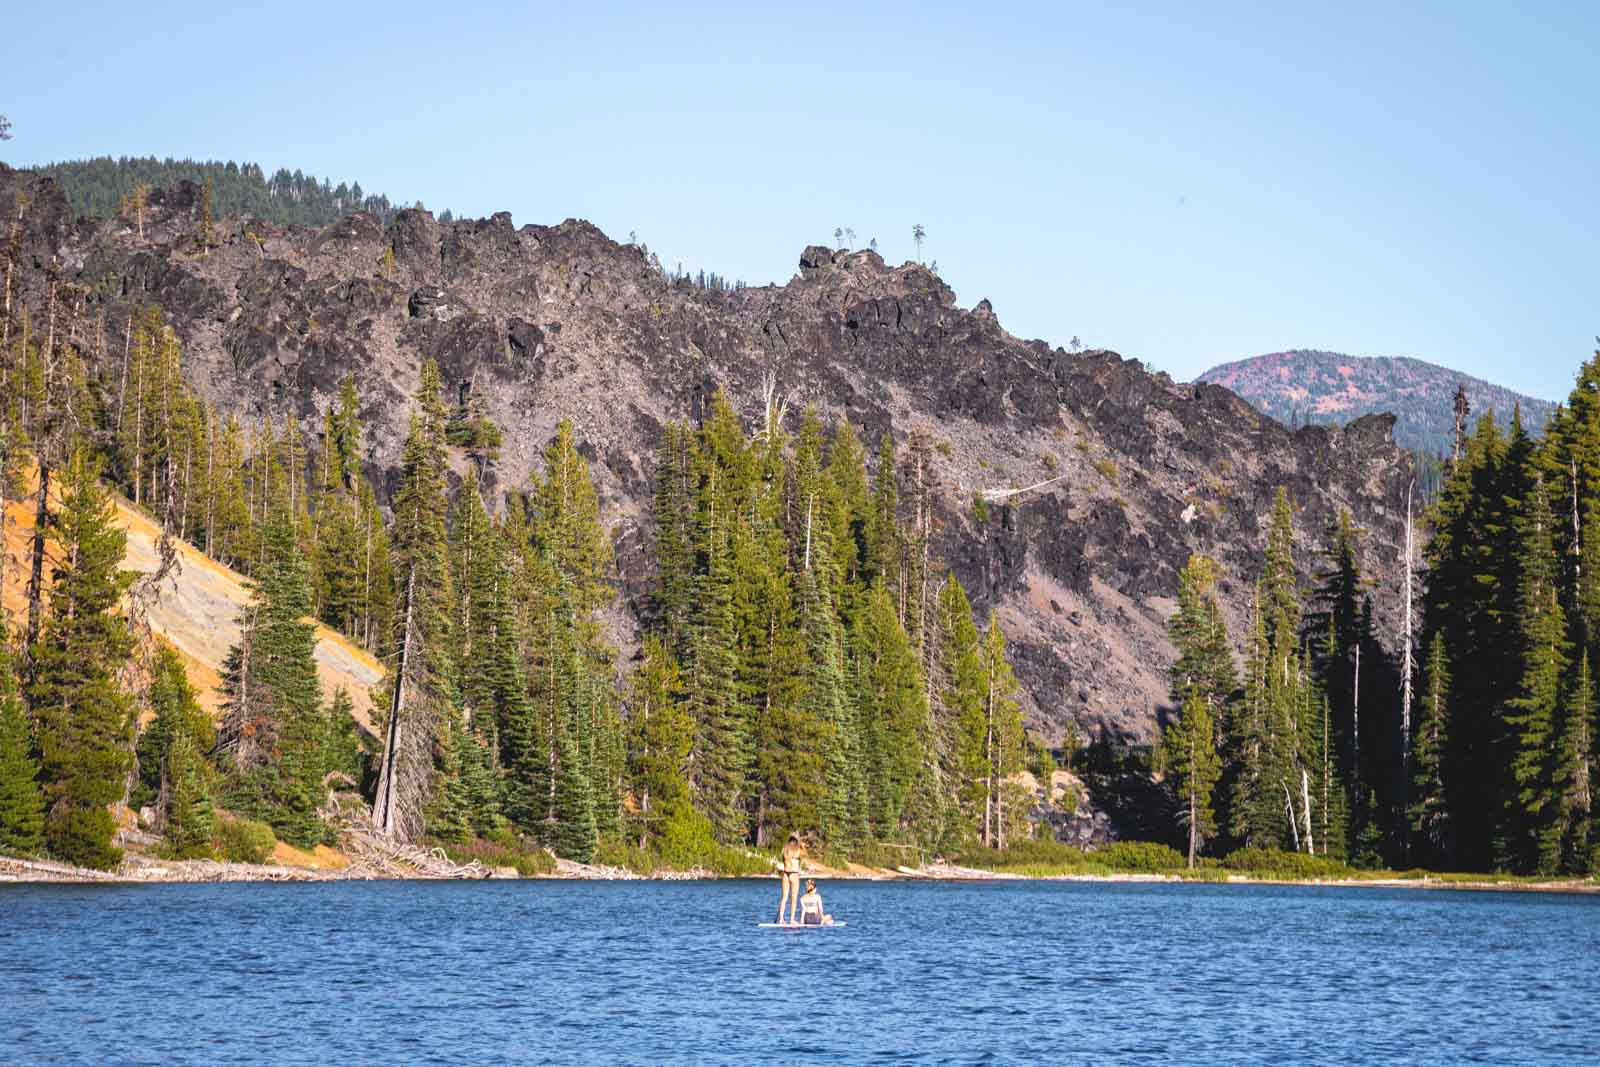 Paddle boarding is a fun activity to do in Devils Lake near Cascade Lakes.